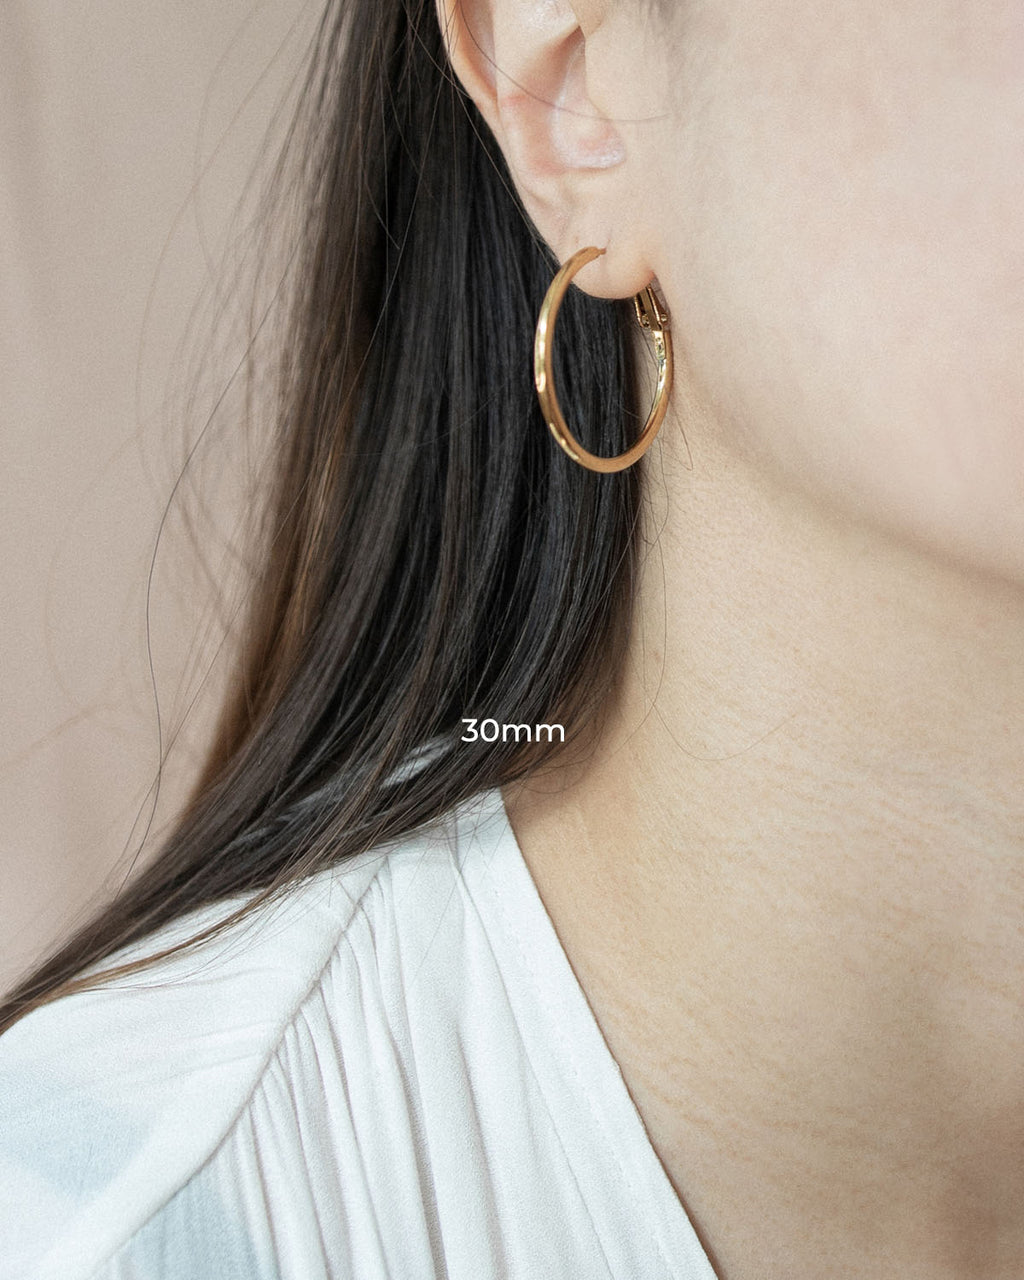 Thin, barely there gold hoop earrings in 30mm diameter | The Hexad